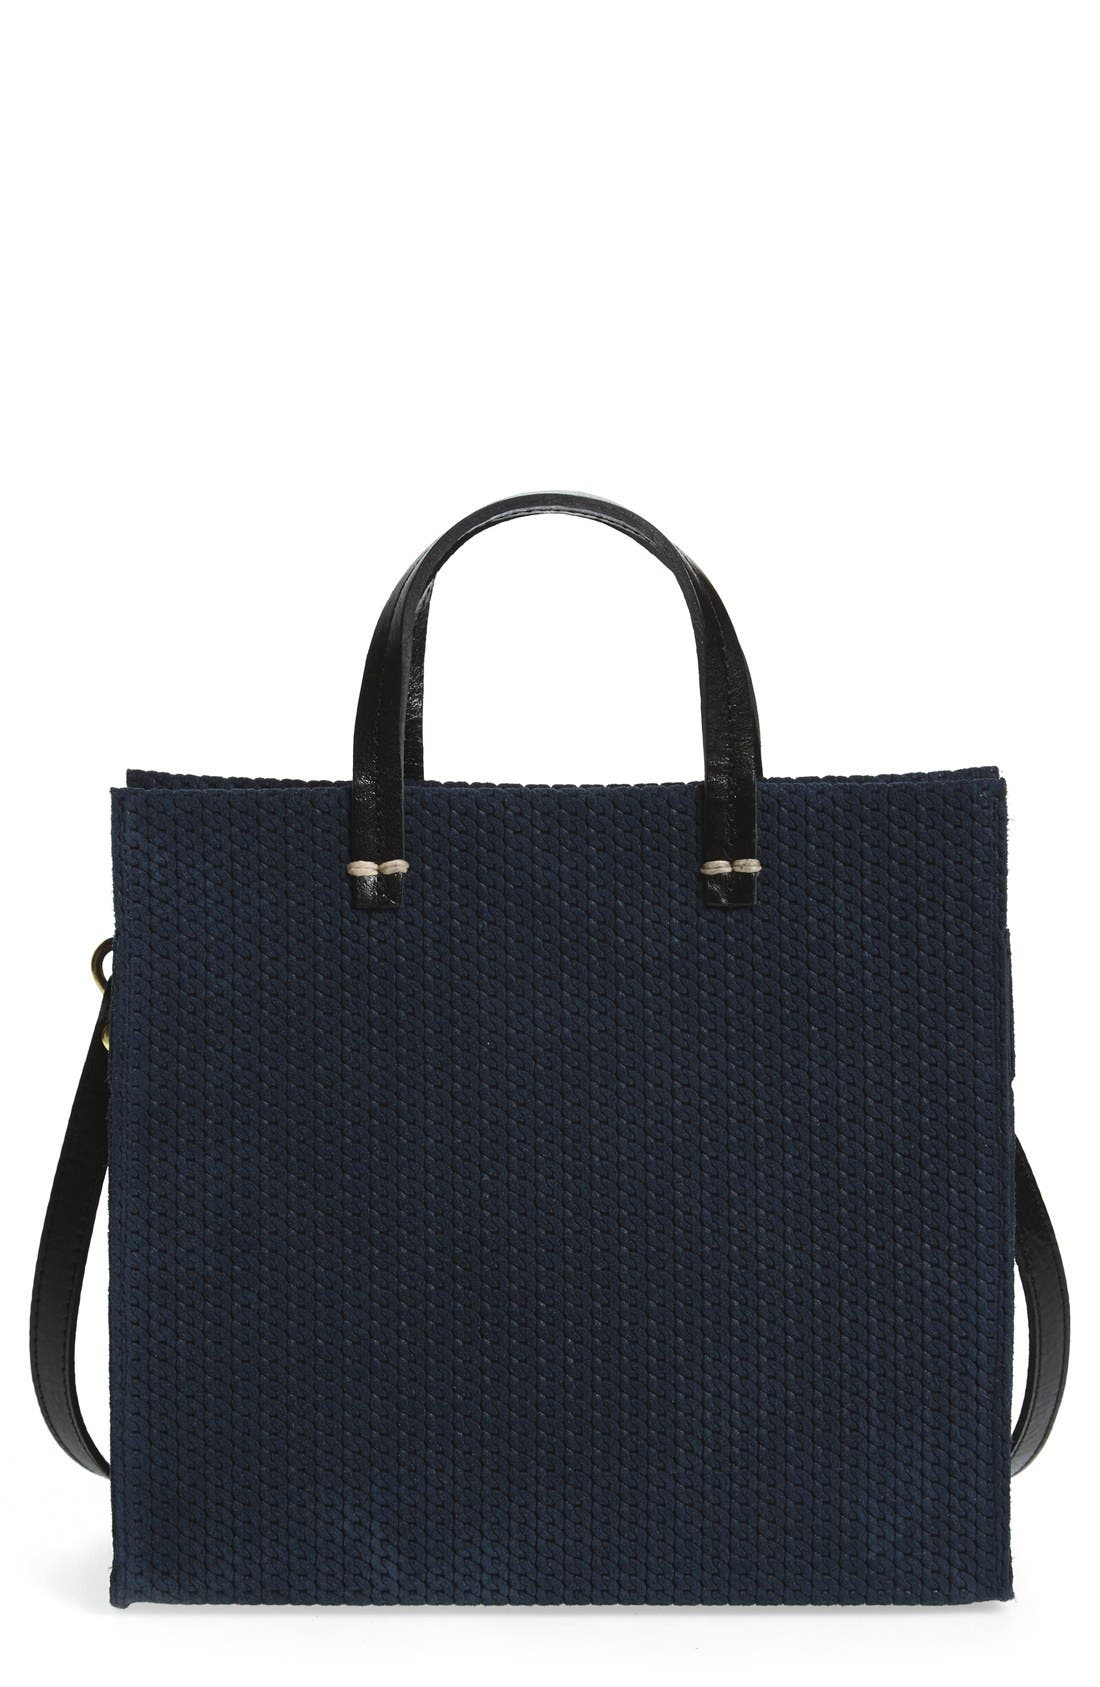 Alternate Image 1 Selected - Clare V. 'Petite Simple - Marine Rope' Woven Suede Tote